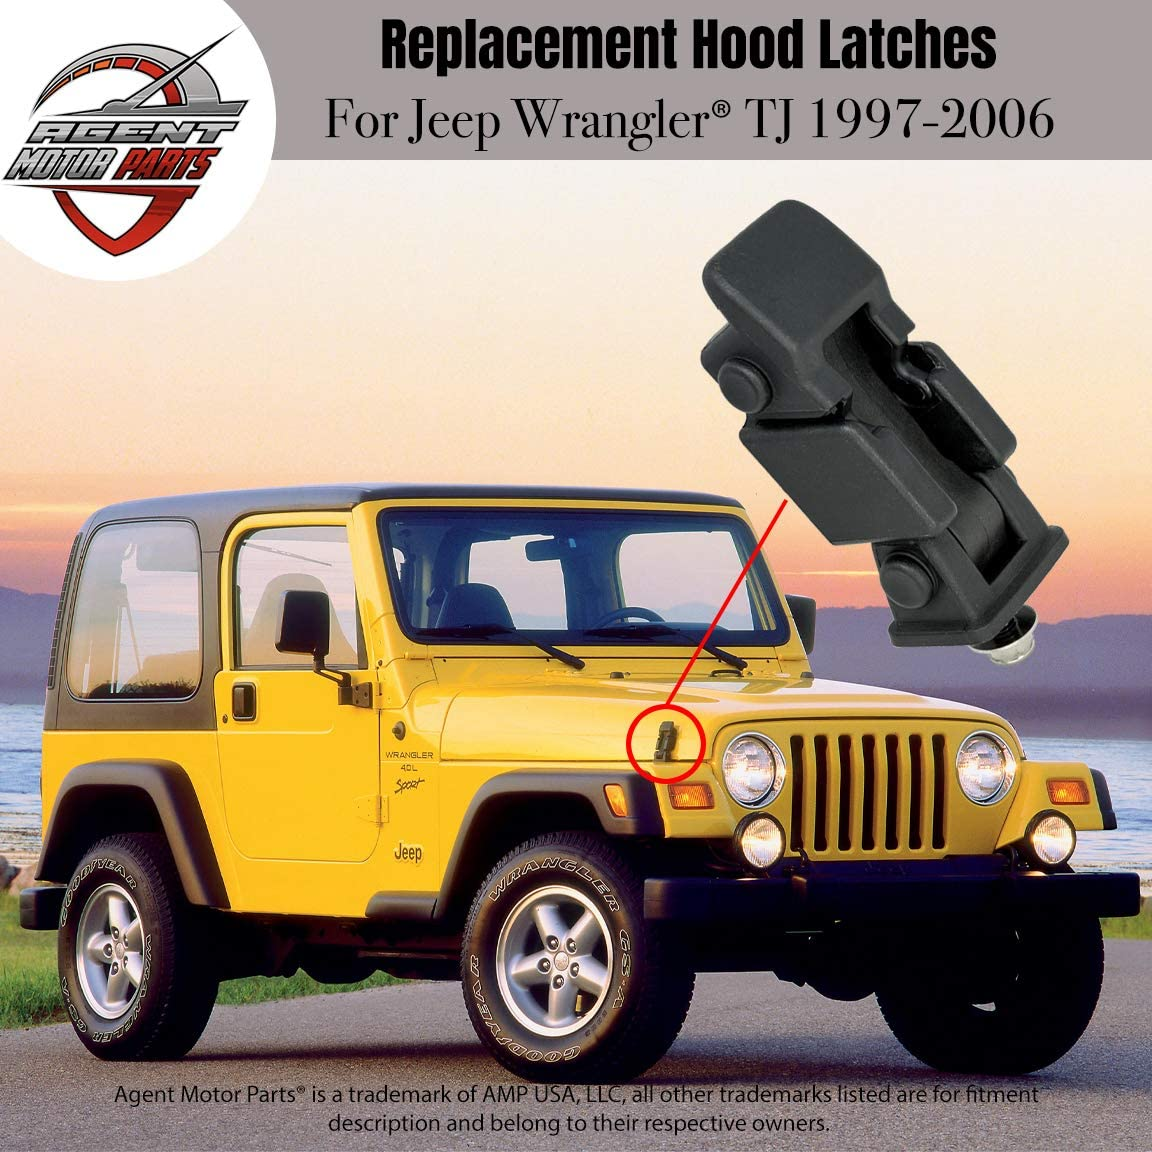 2000 1999 42422 2005 Fits Jeep Wrangler TJ 1997 2003 - Replaces# 55176636AD 2 68038118AA 1998 2004 2002 Hood Latches Pair Set 2006 Hold-Down Hood Latch Catch Kit 1997-2006 2001